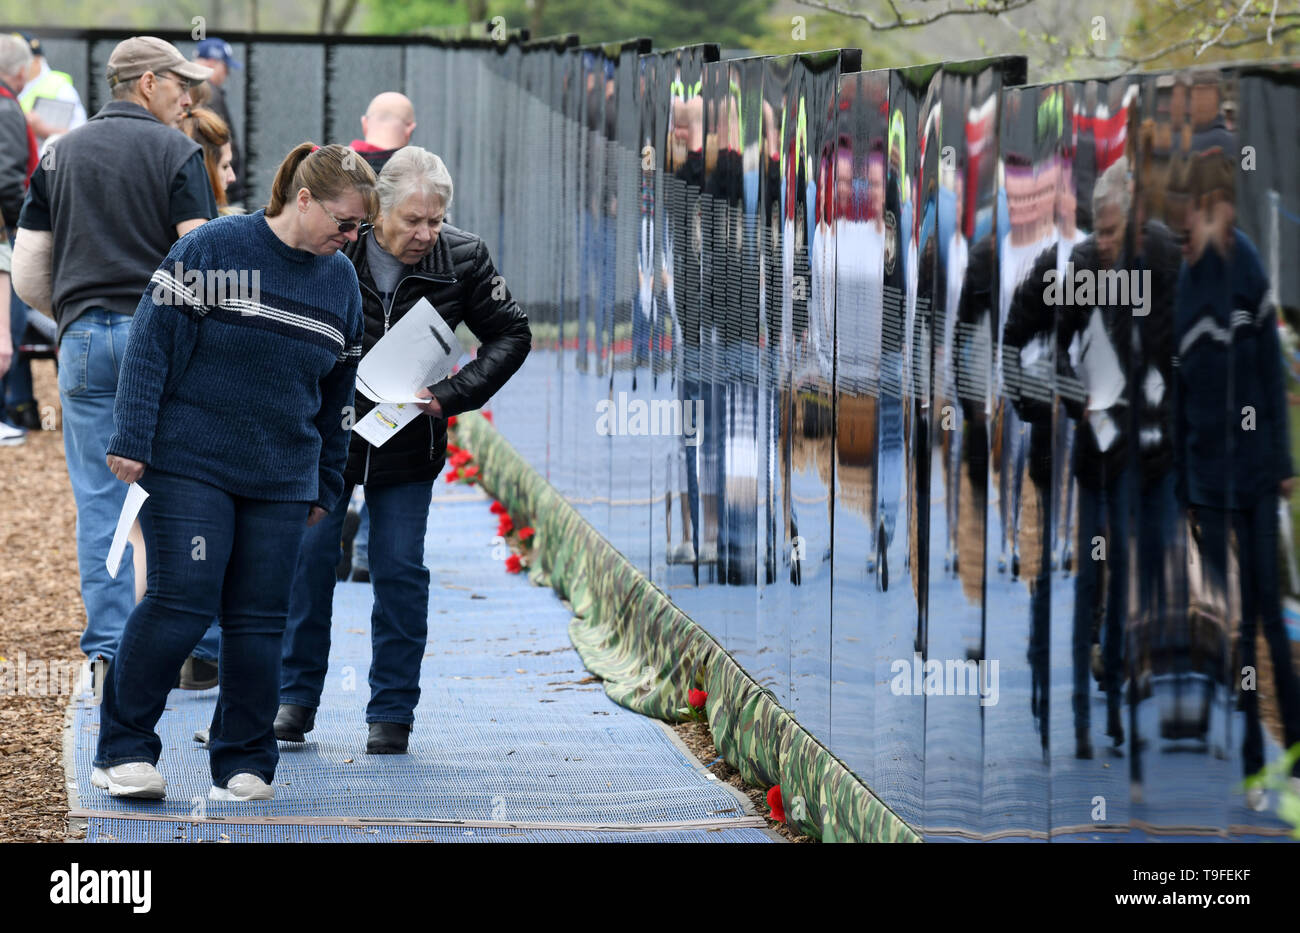 Racine, Wisconsin, USA. 18th May, 2019. Emma Ingersoll, left, and her mother-in-law Judy Ingersoll visit the Moving Wall, a half-size replica of the Vietnam Veterans Memorial, in Racine, Wisconsin, Saturday May 18, 2019. They have visited the Vietnam Veterans Memorial monument in Washington, DC A family friend, Michael Lawrence White, was killed in the war. Forty-seven soldiers from Racine were killed during the war. The Moving Wall has been touring the United States for more than 30 years. Credit: Mark Hertzberg/ZUMA Wire/Alamy Live News - Stock Image